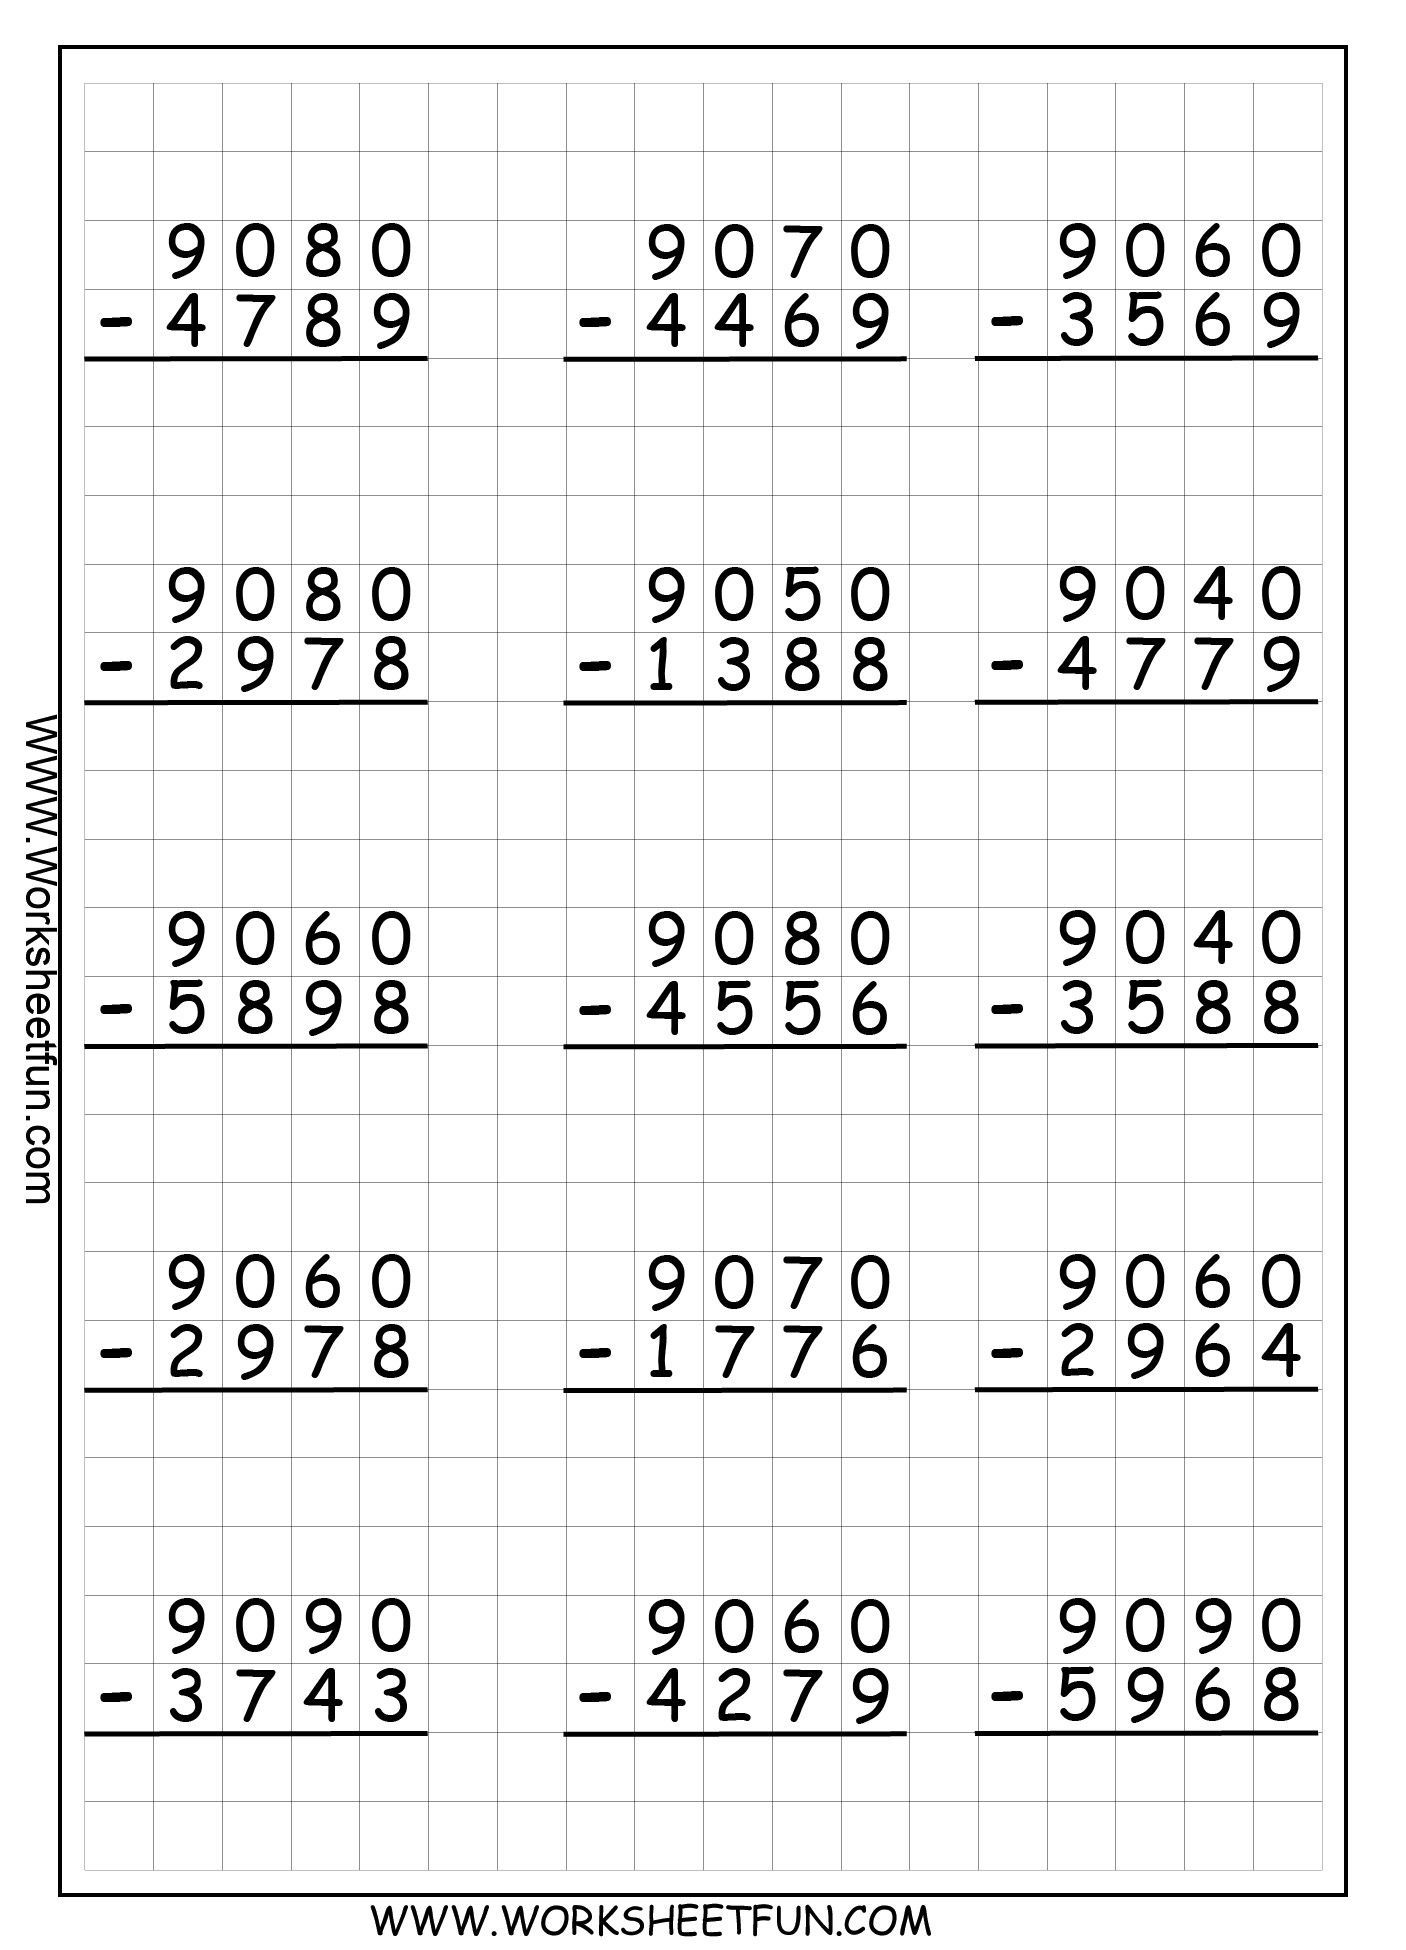 5 Free Math Worksheets First Grade 1 Subtraction Subtracting 1 Digit From 2 Digit No Math Subtraction Free Math Worksheets Addition And Subtraction Worksheets